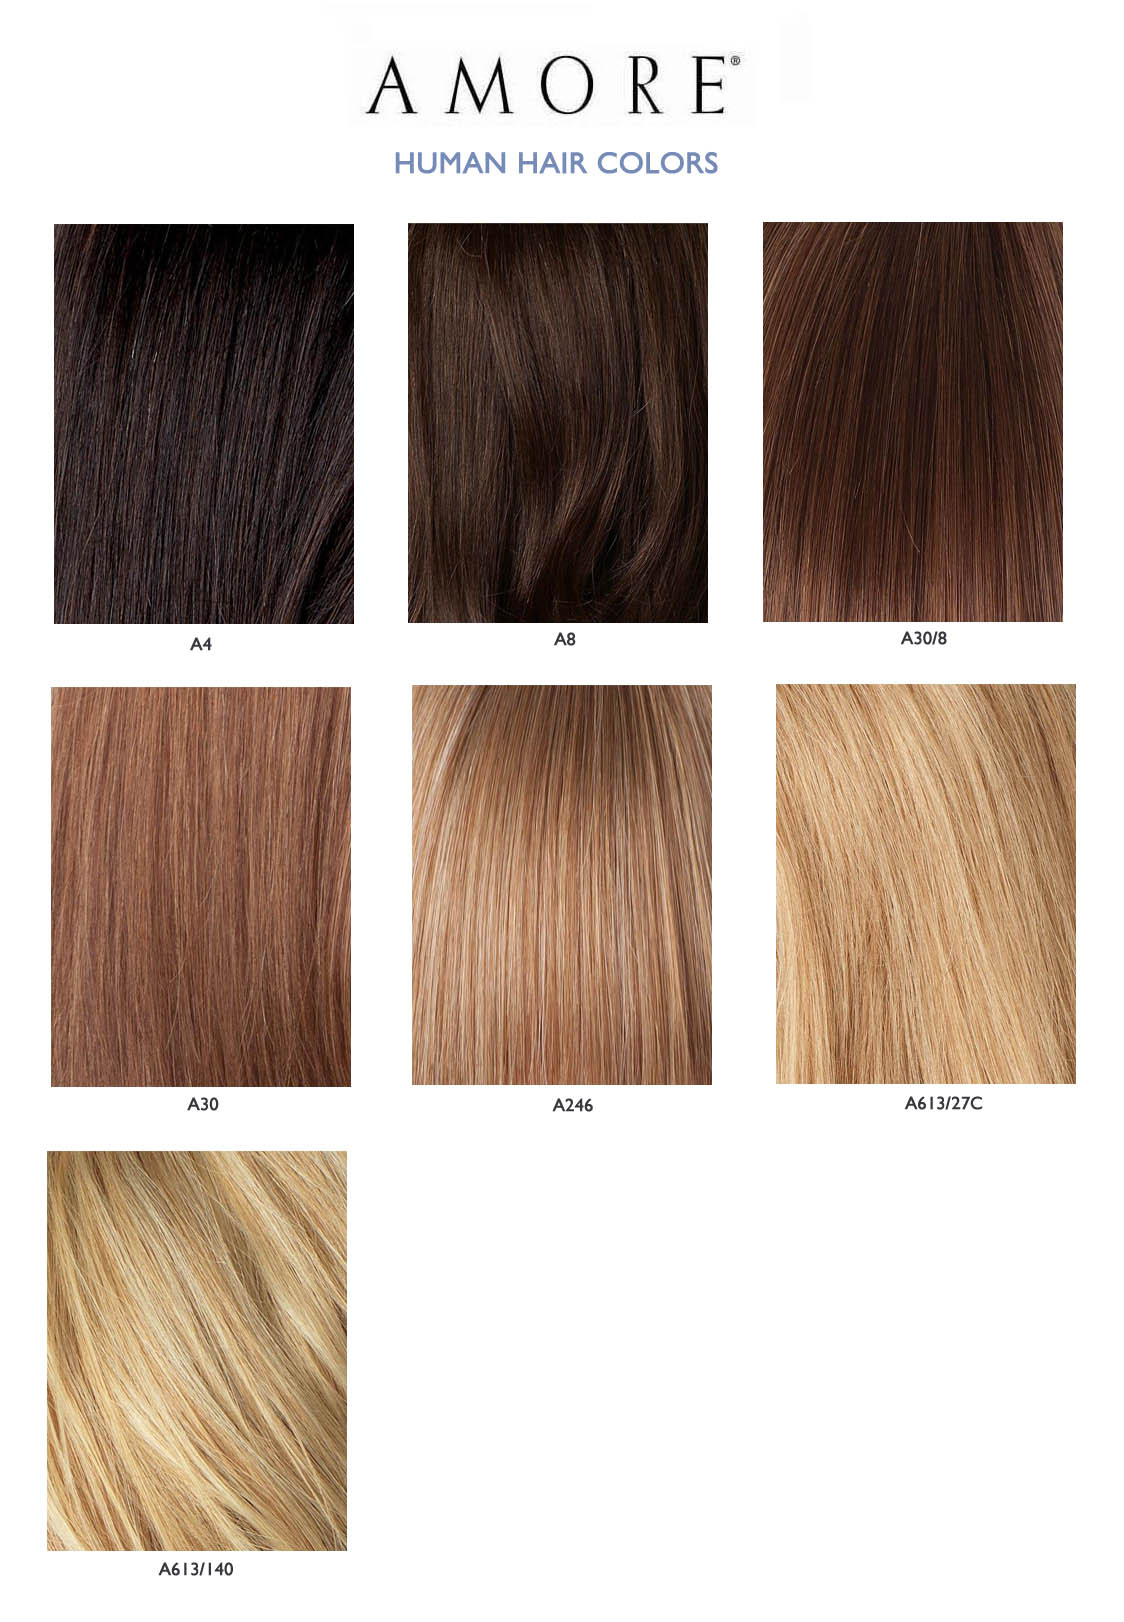 AMORE HUMAN HAIR COLORS